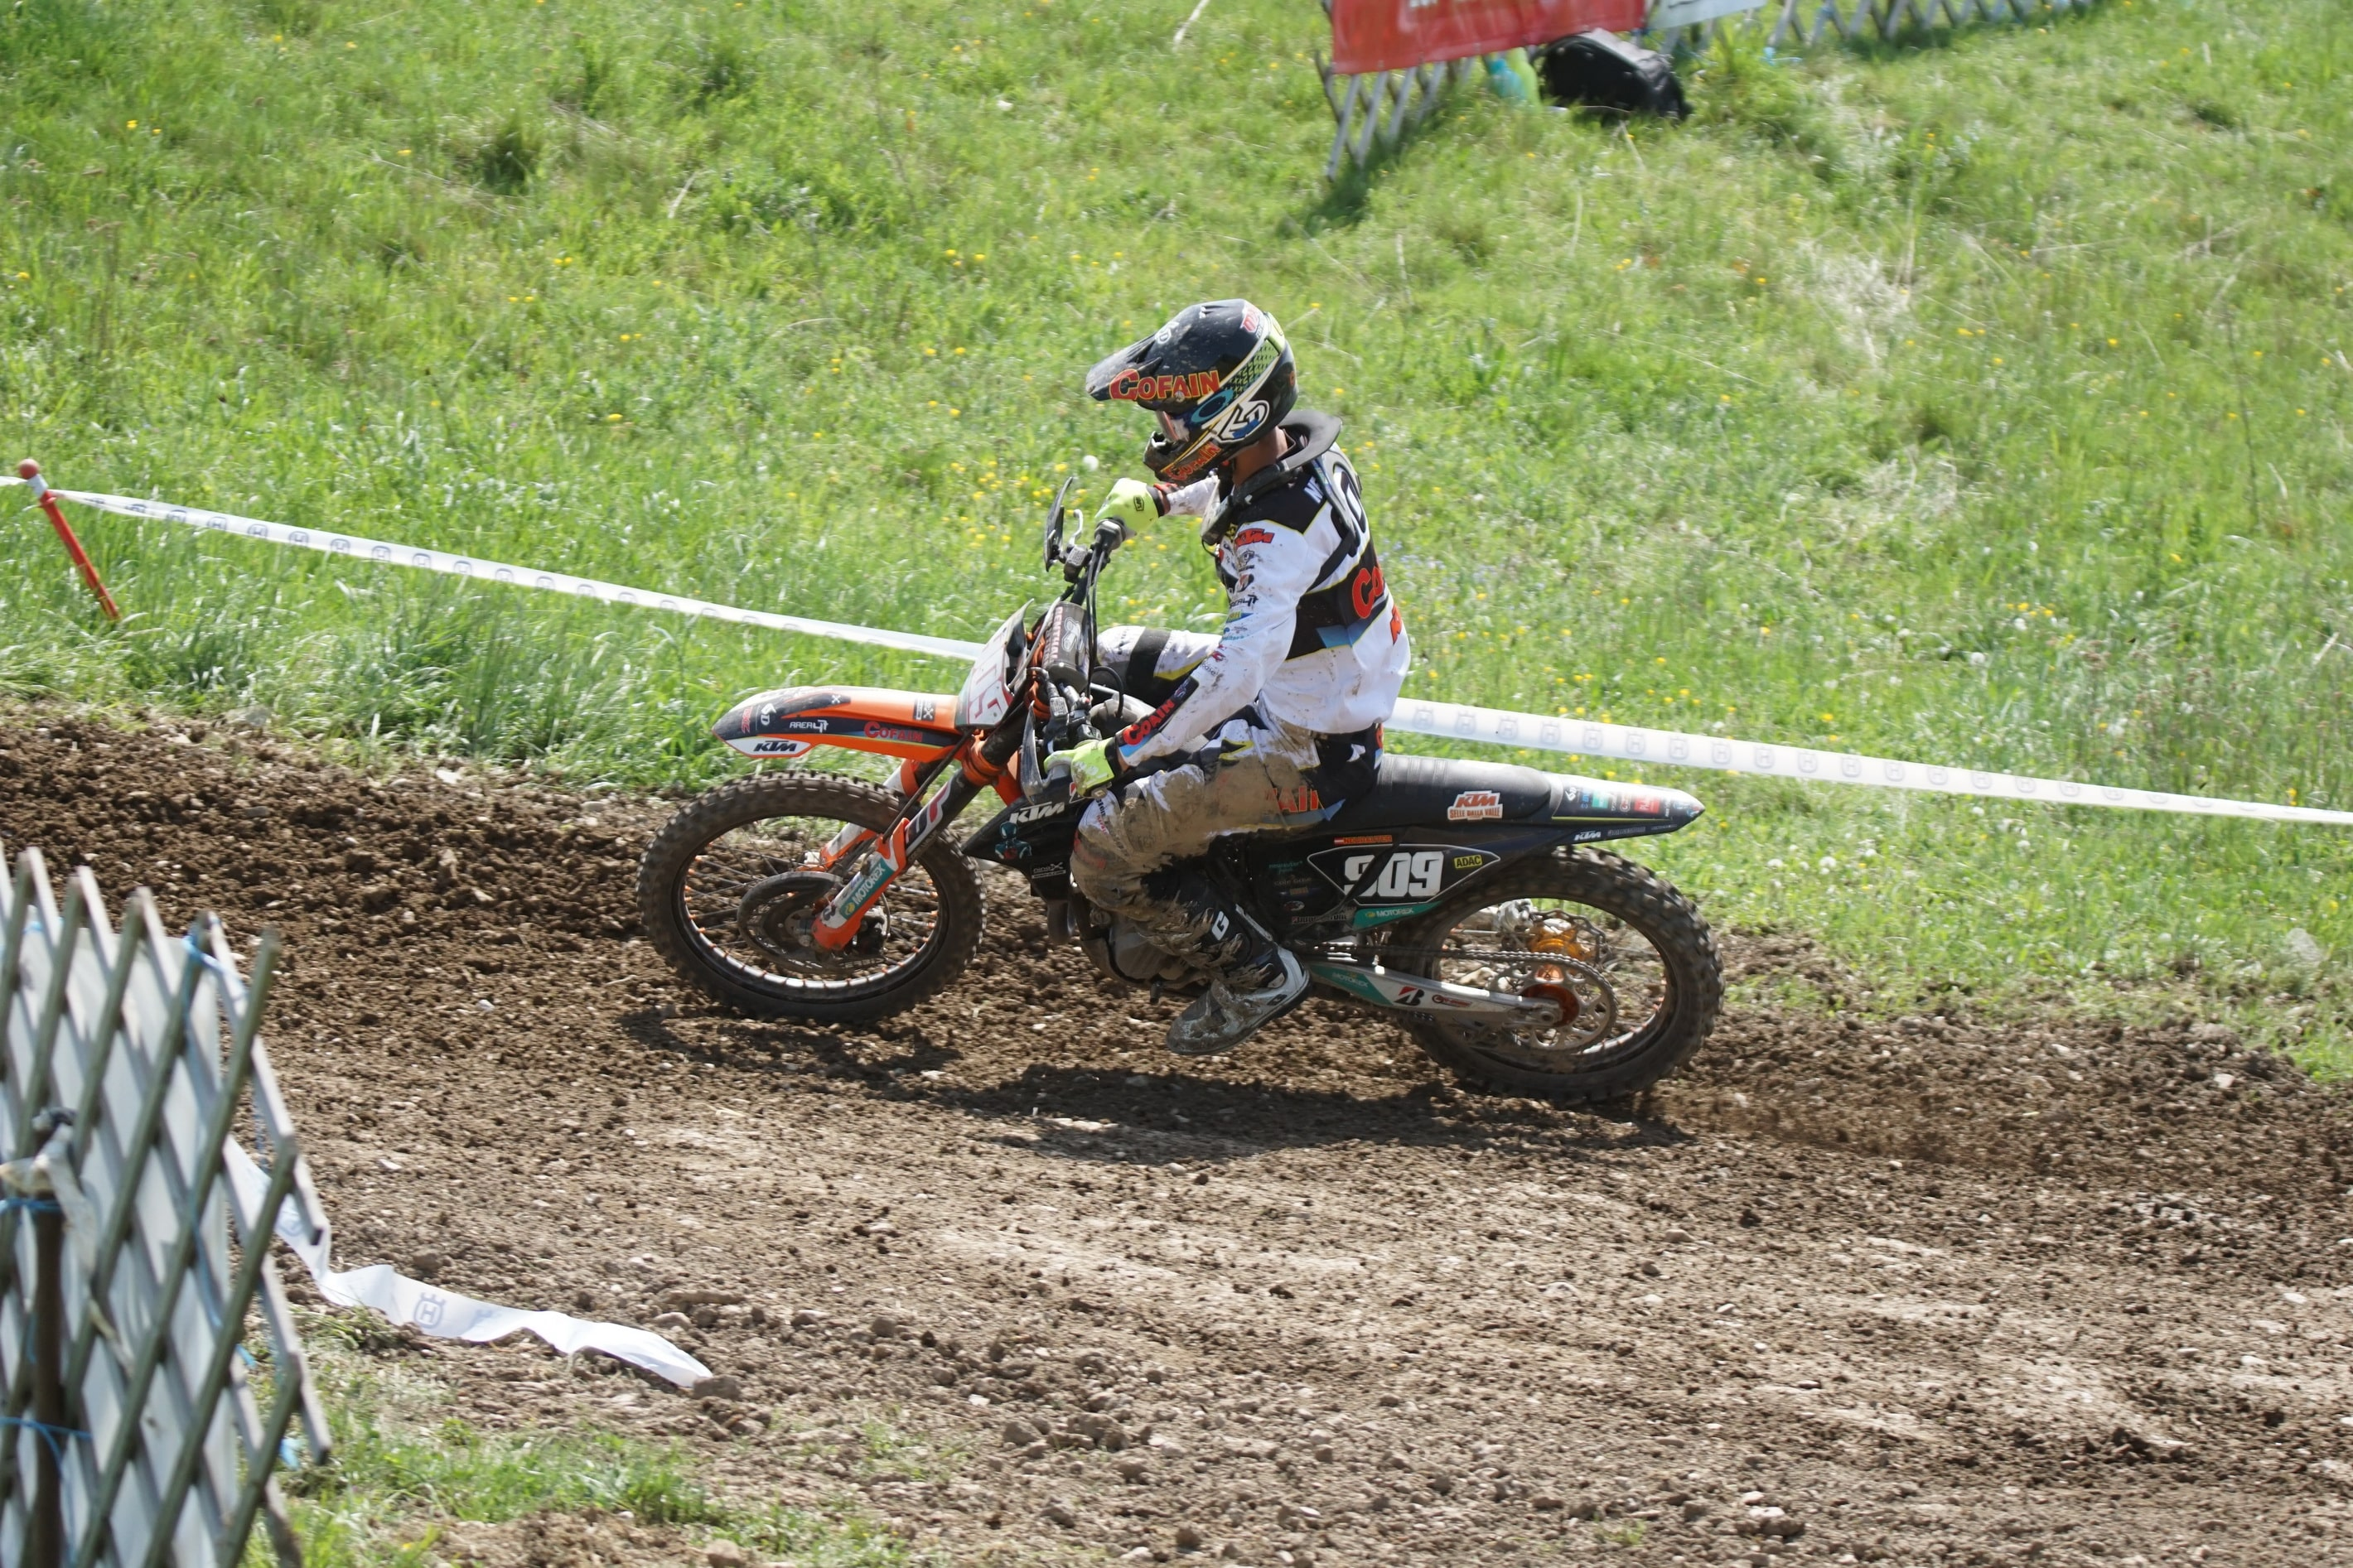 DSC 457_Moto Cross Sittendorf Teil1 am 29.04.2018